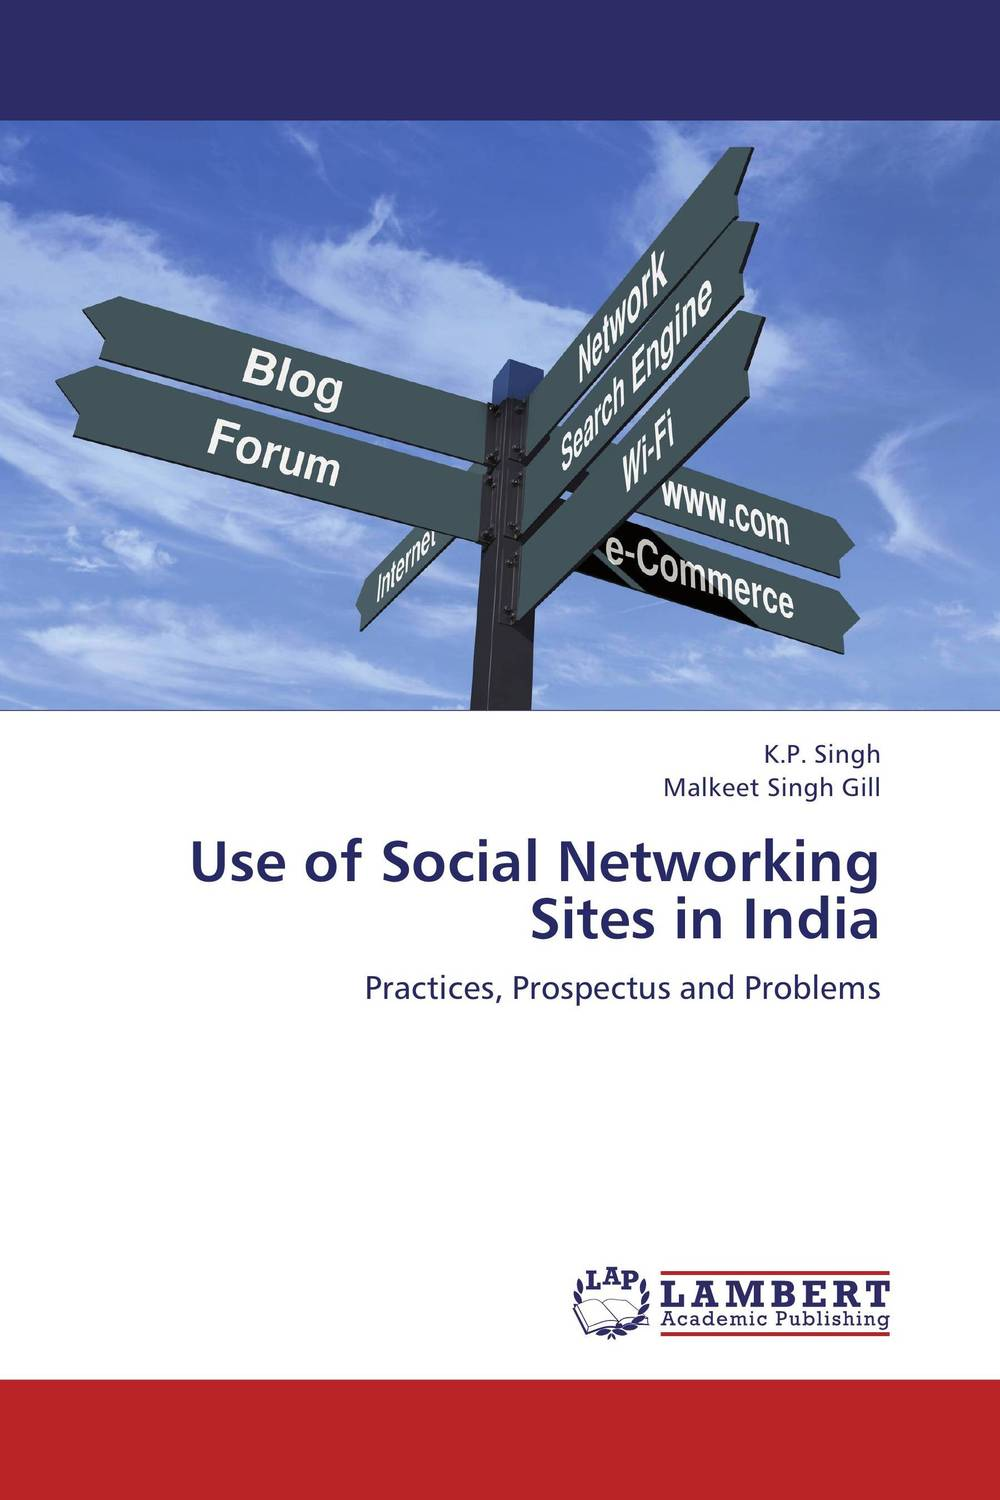 Use of Social Networking Sites in India gabriel oguntoyinbo social networking sites as pr tools in an organizations csr activities